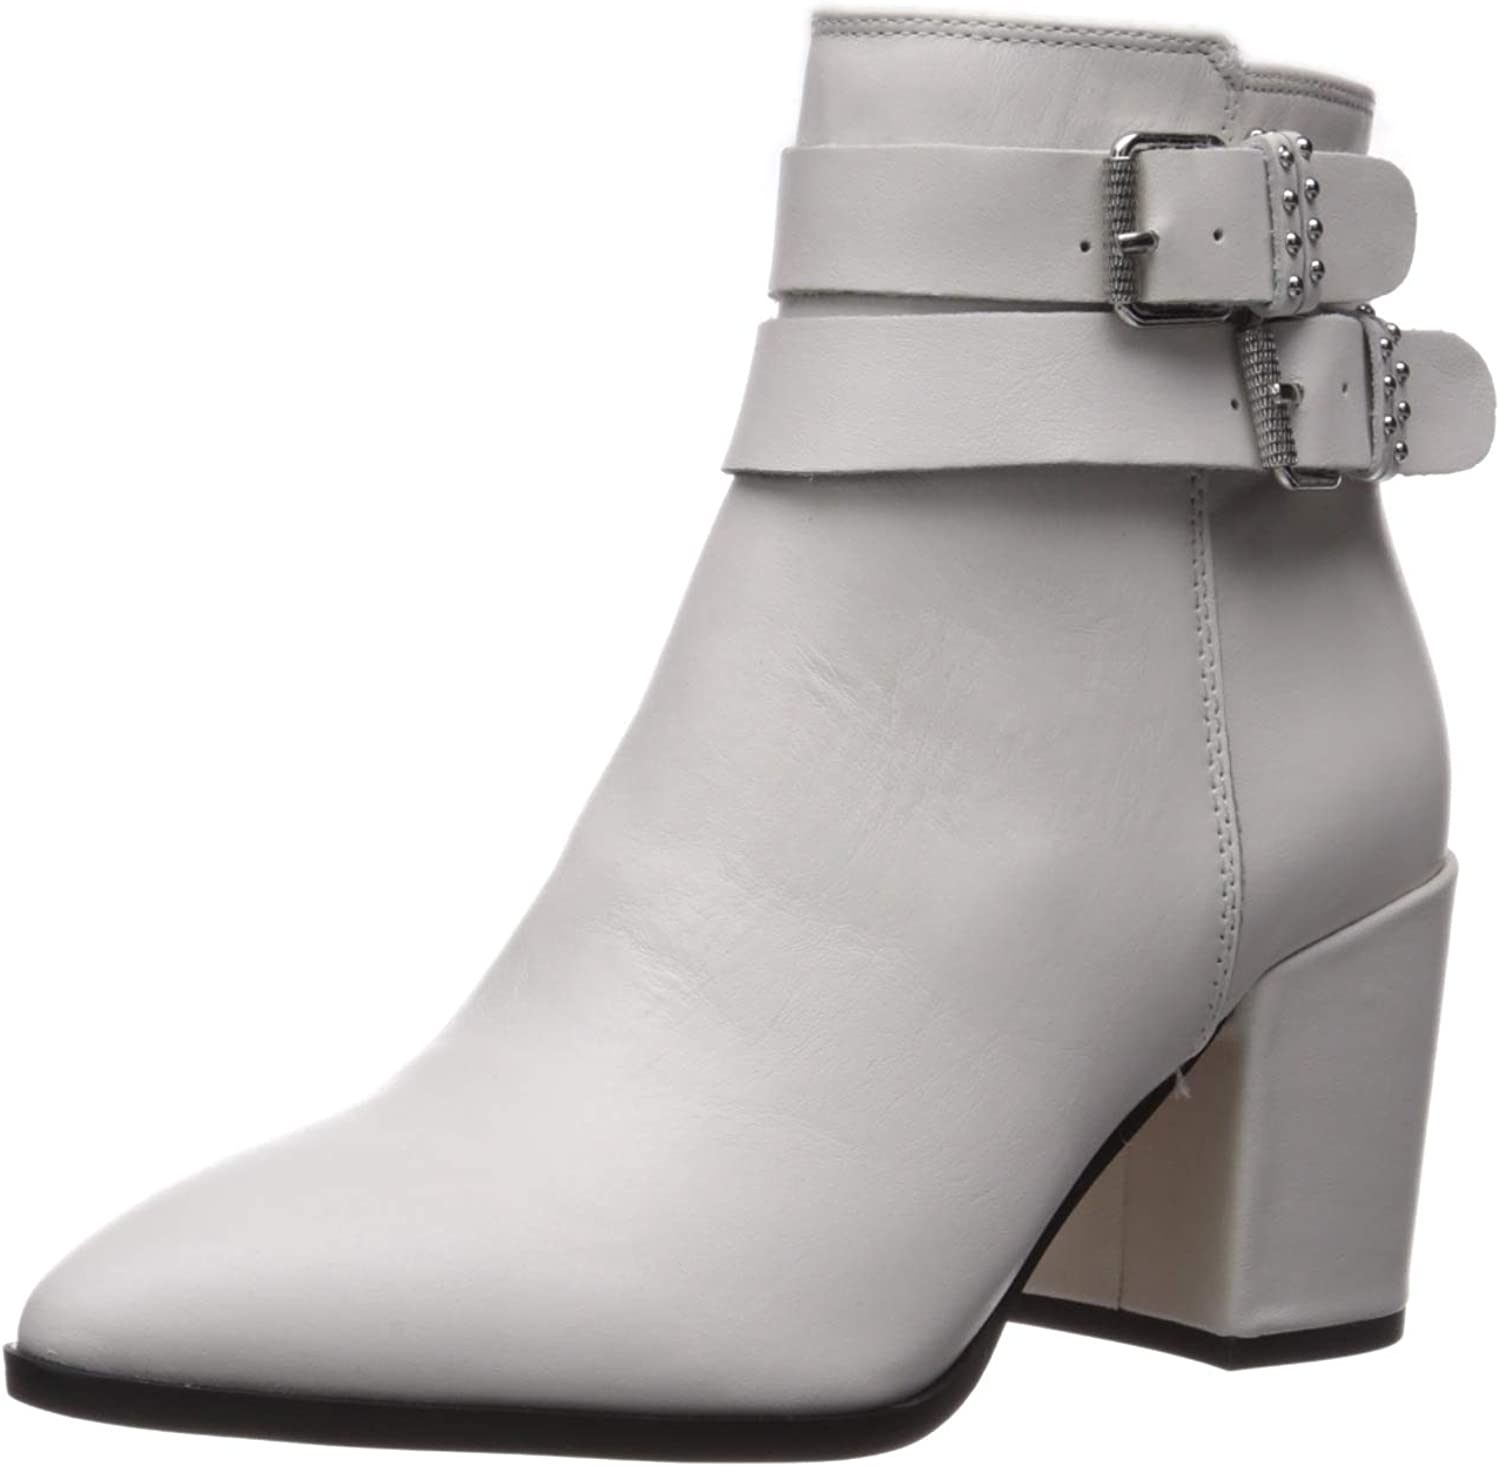 STEVEN by Steve Madden Women's Pearle Fashion Boot